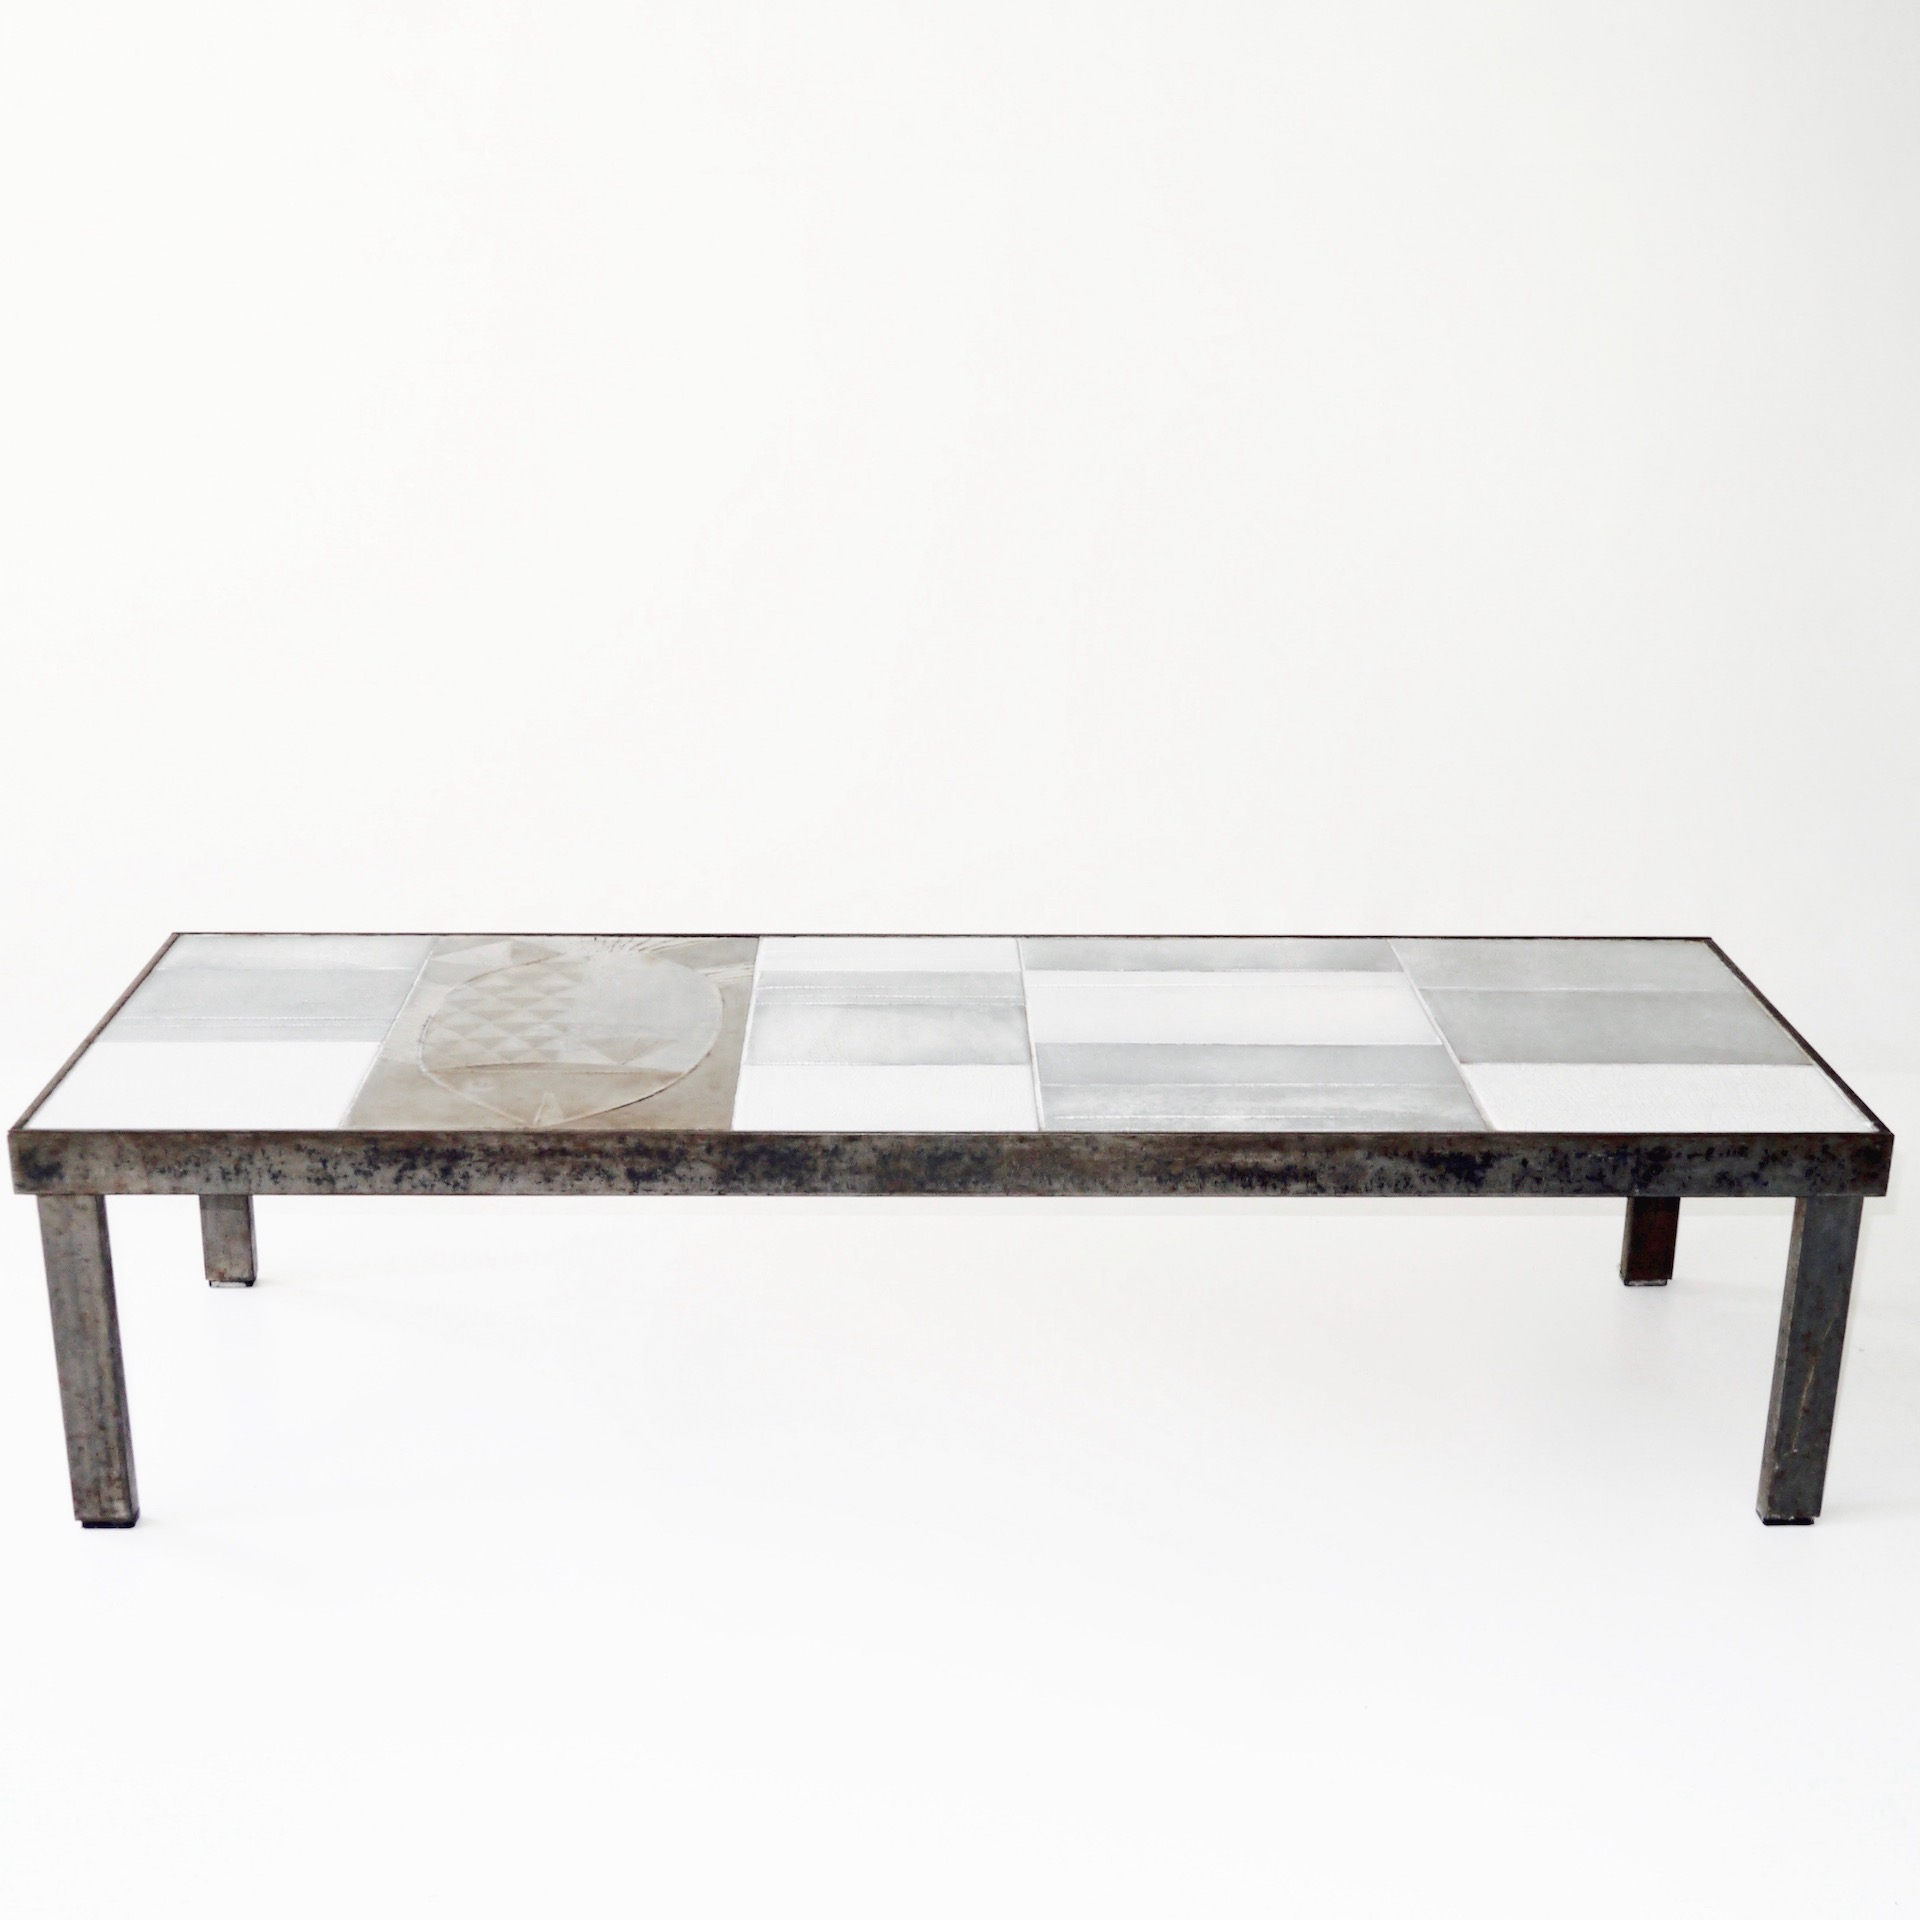 Roger Capron - Low Table Decorated with a Fish